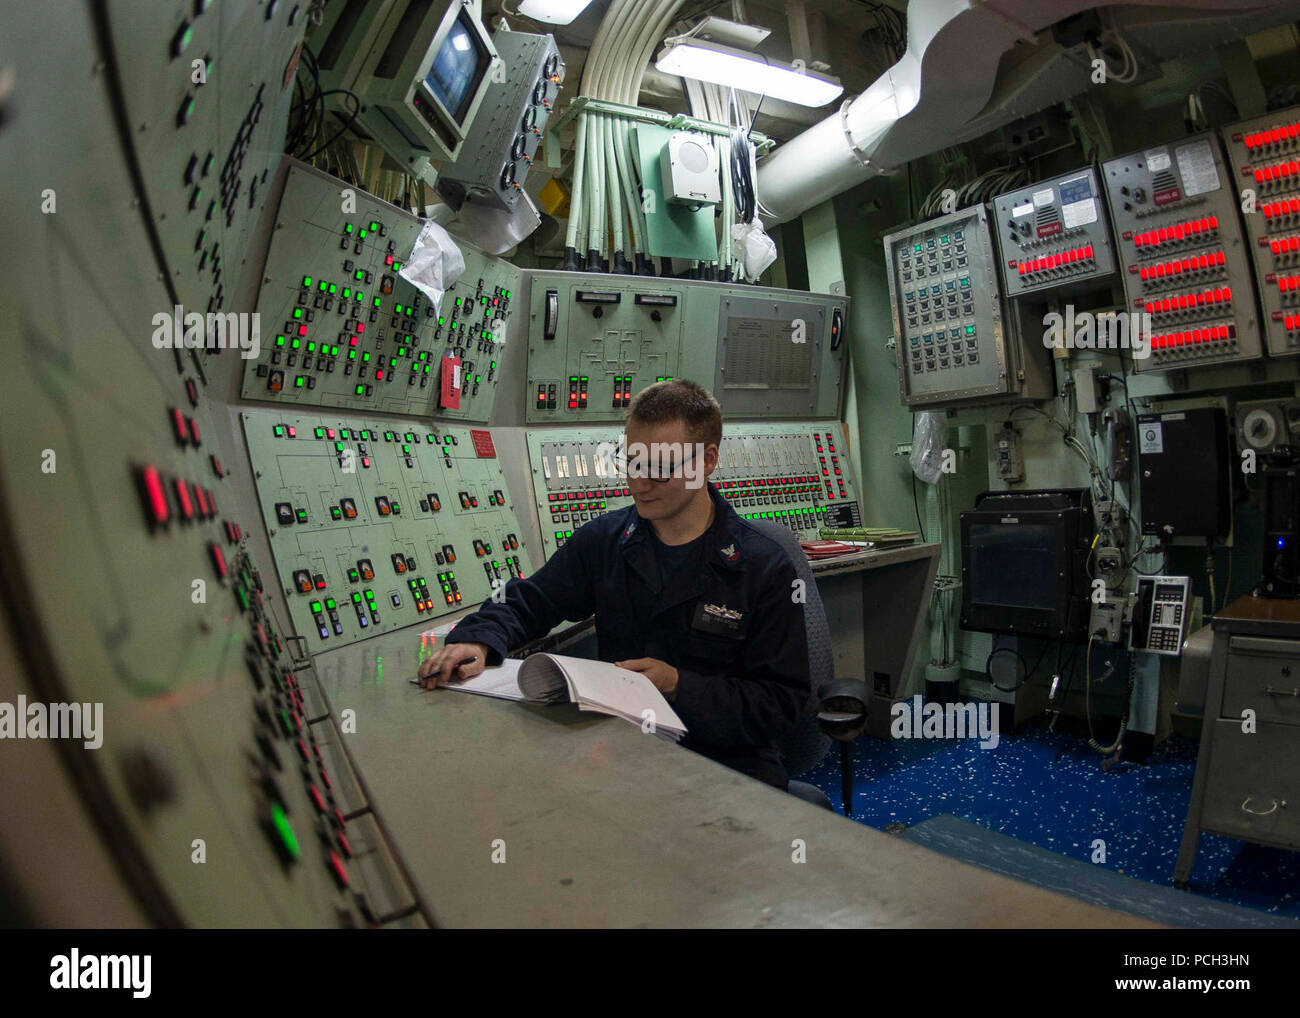 U.S. 5TH FLEET AREA OF OPERATIONS (May 12, 2018) Damage Controlman 2nd Class Ross Fergerson stands watch as the damage control central watch supervisor aboard the Wasp-class amphibious assault ship USS Iwo Jima (LHD 7). Iwo Jima is homeported in Mayport, Fla., and is on deployment to the U.S. 5th Fleet area of operations in support of maritime security operations to reassure allies and partners, and preserve the freedom of navigation and the free flow of commerce in the region. Stock Photo